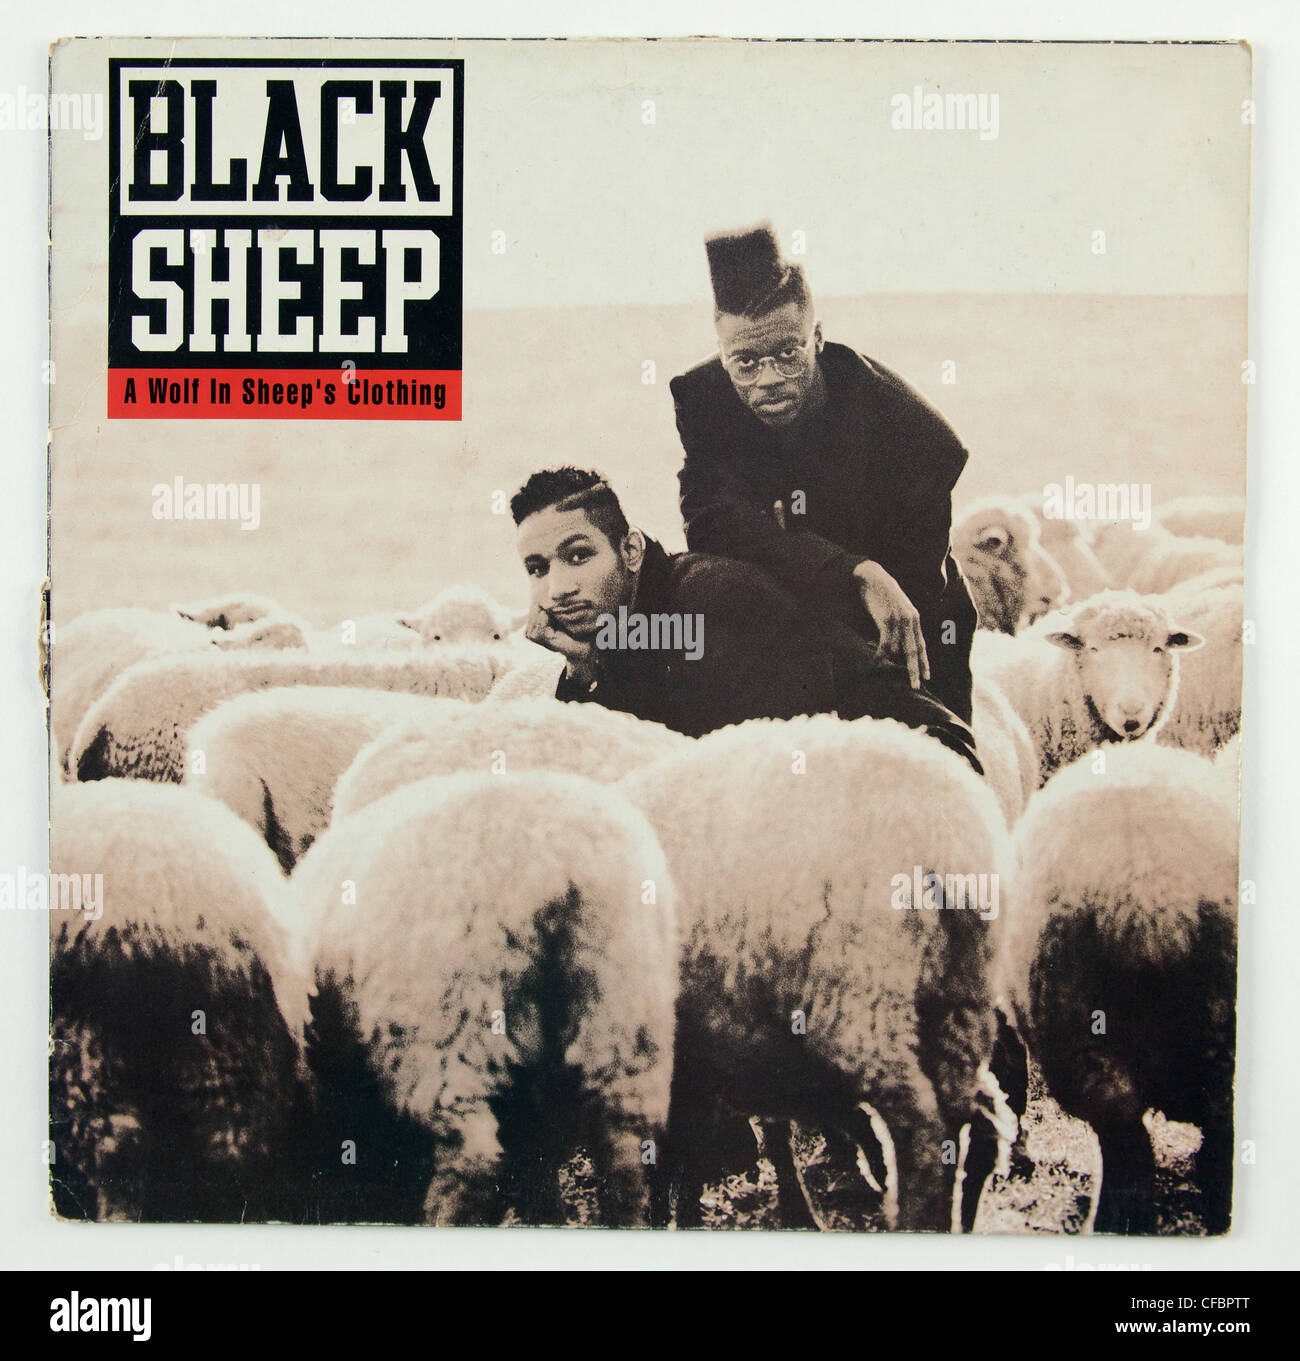 Black Sheep A Wolf In Sheeps Clothing Album Cover Stock Photo